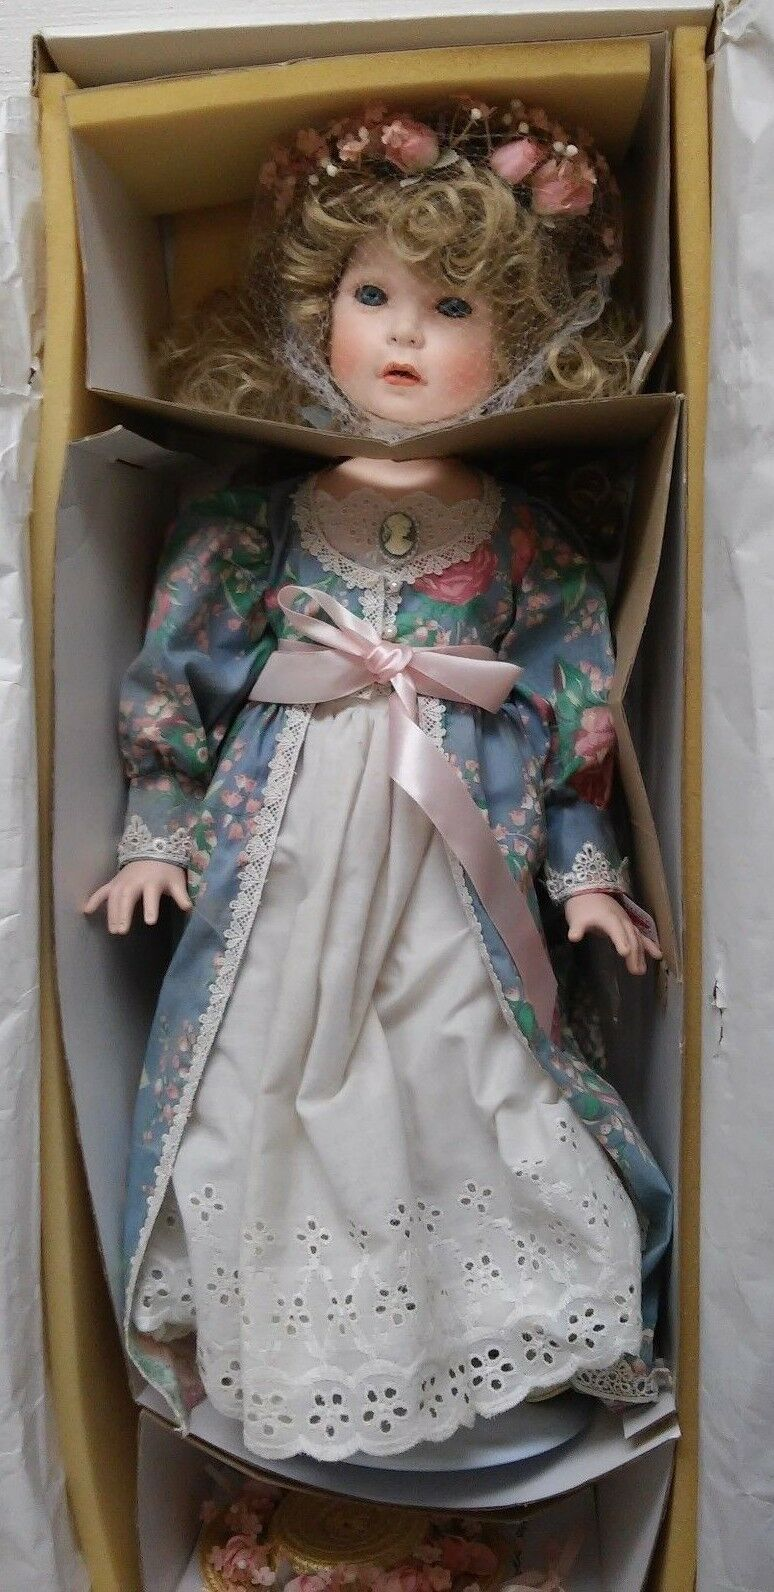 WORLD GALLERY DOLLS MErossoITH BY VINCENT J DEFILIPPO LTED ED 267/1500 EUC BOX 23